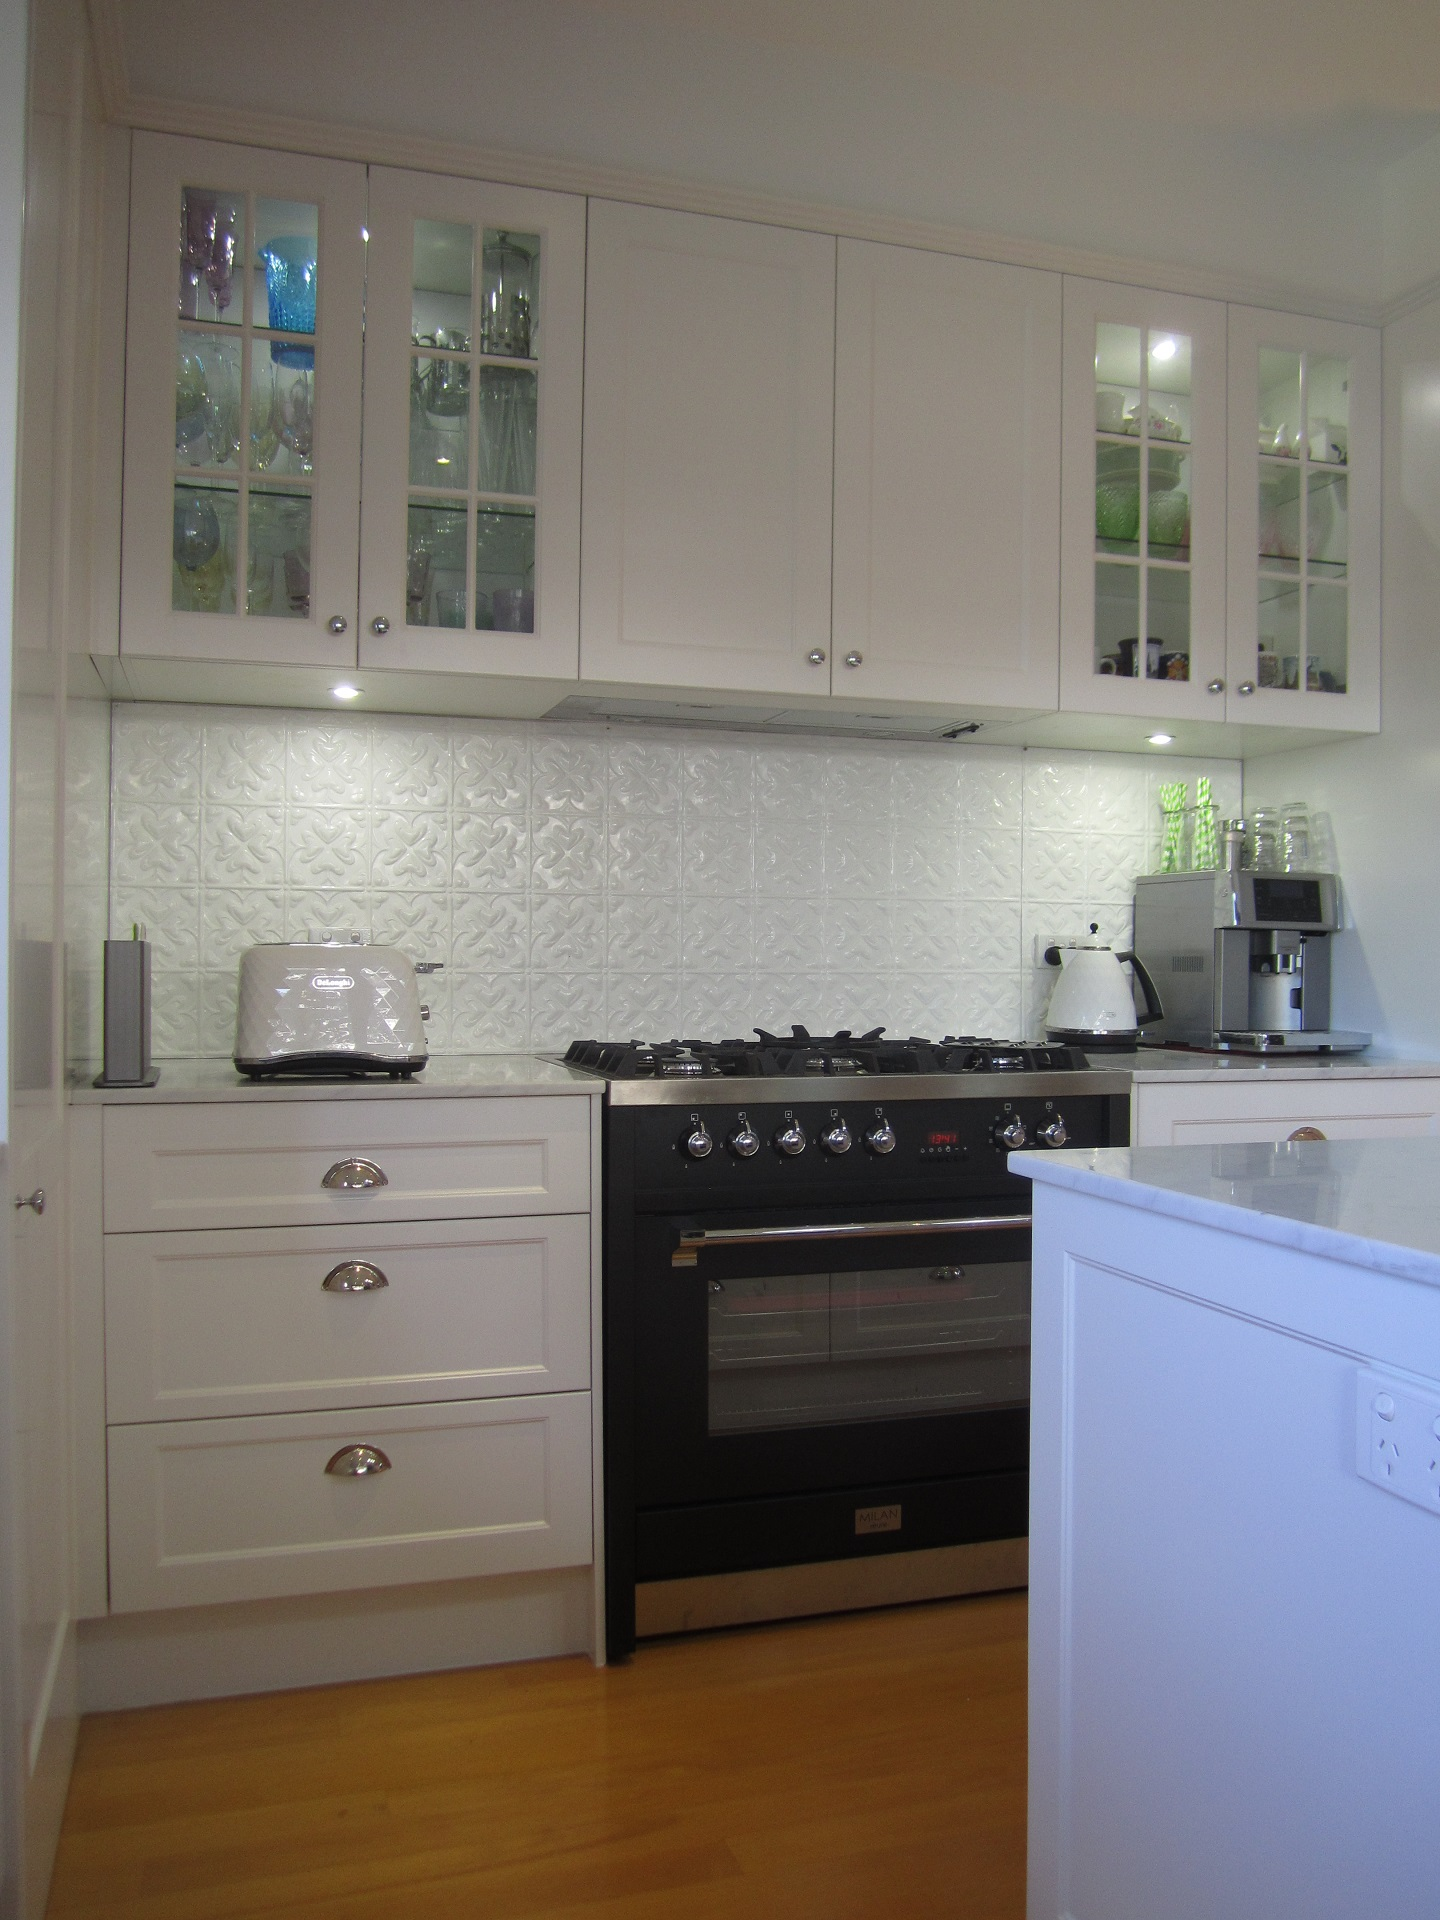 Brisbane Kitchen Design Garate Graceville Traditional KitchenRenovation Belling Richmond Freestanding Oven(11)